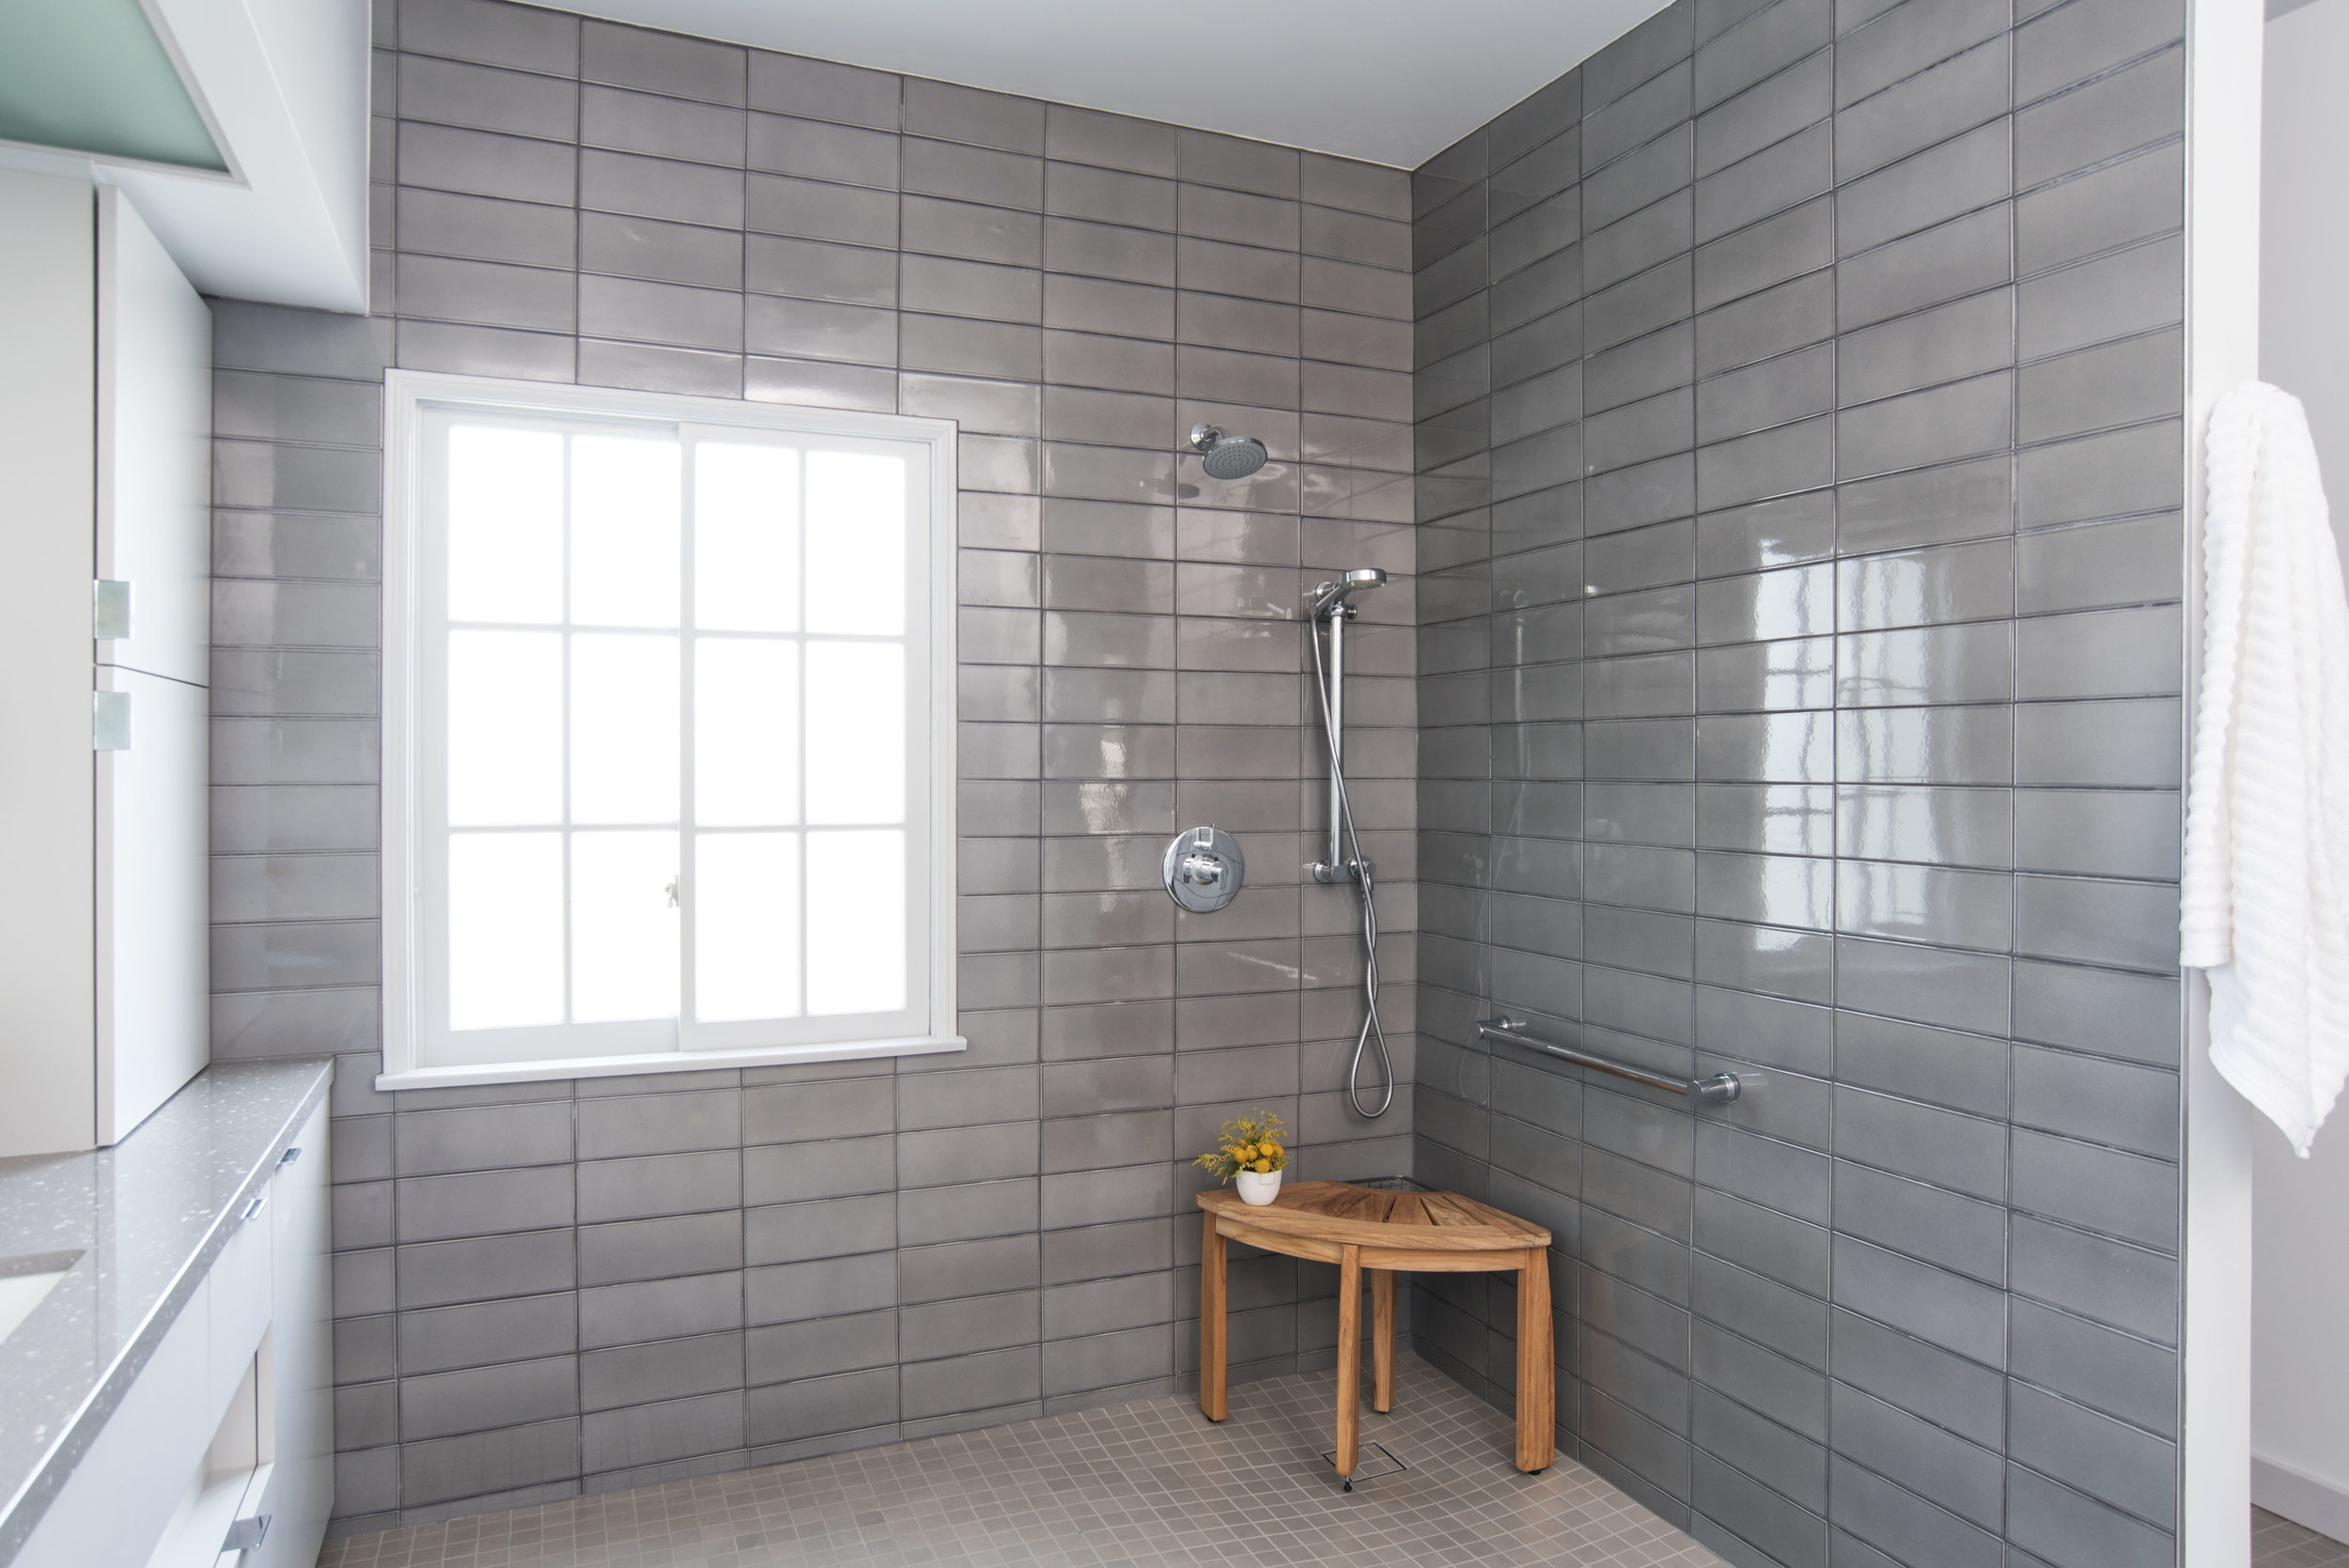 sarah-barnard-design-luxury-minimalism-santa-monica-shower.jpg